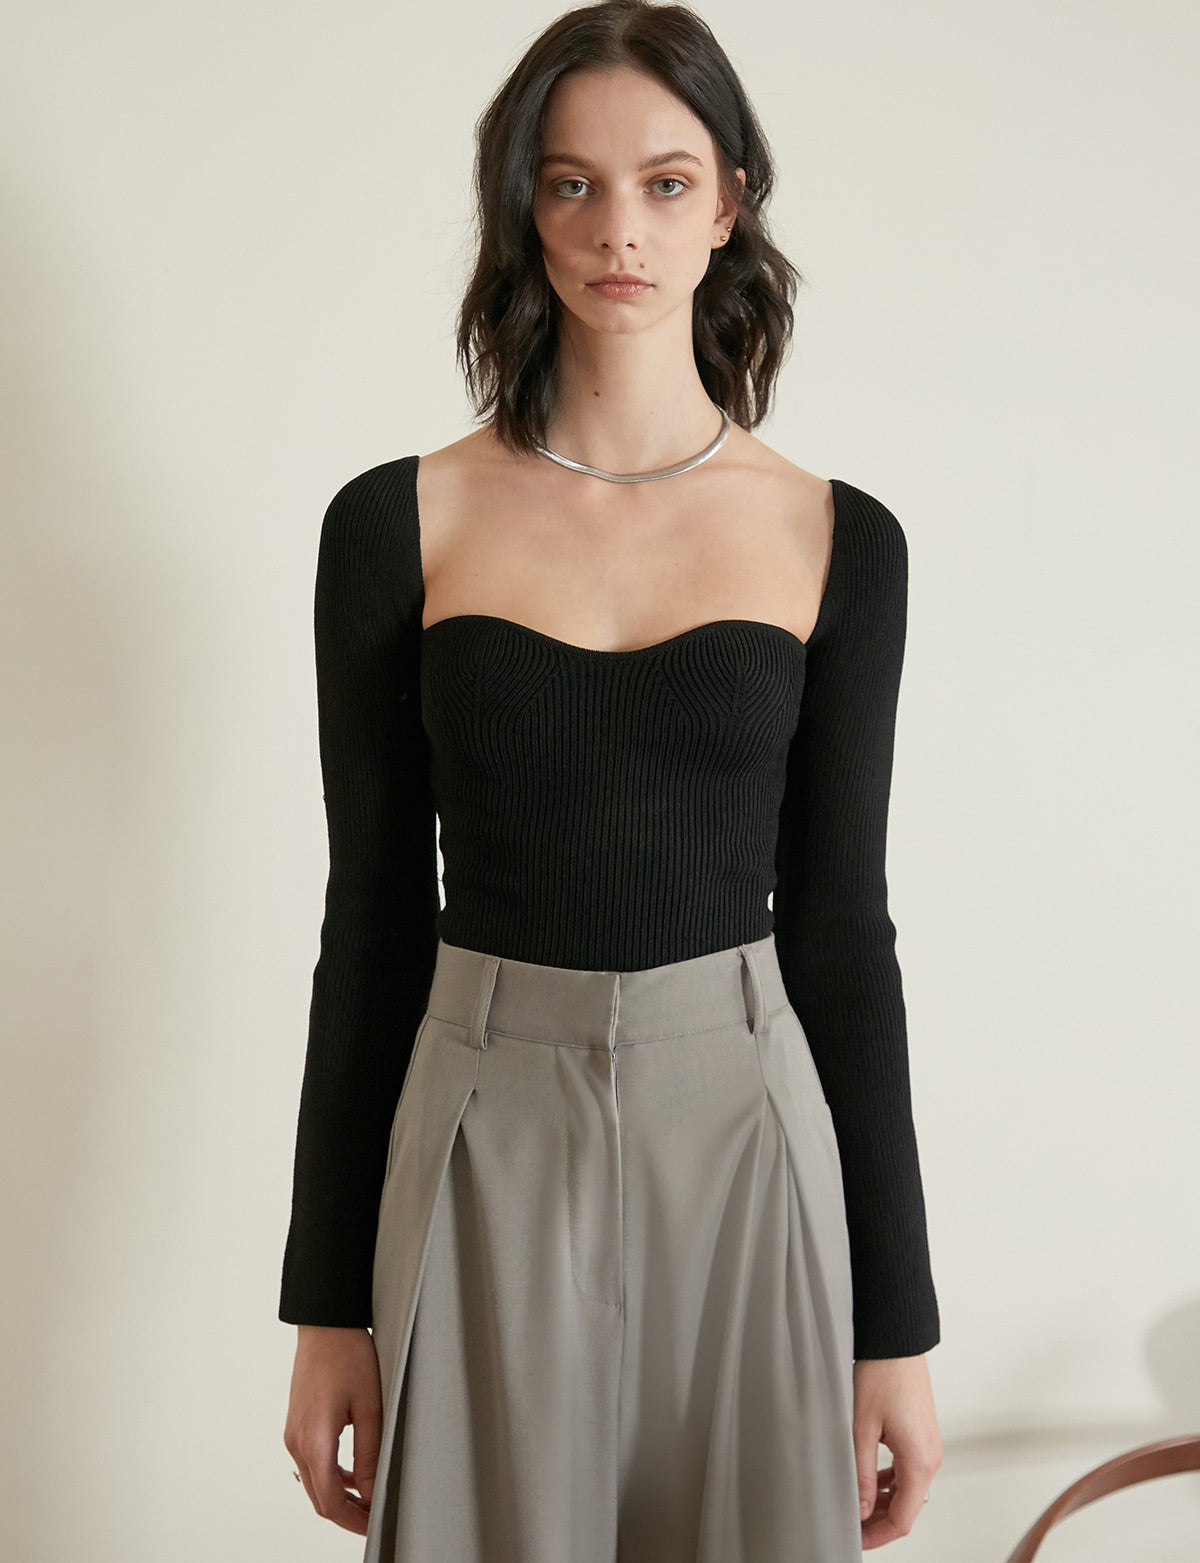 Chiara Knit Bustier Top in Black -PREORDER